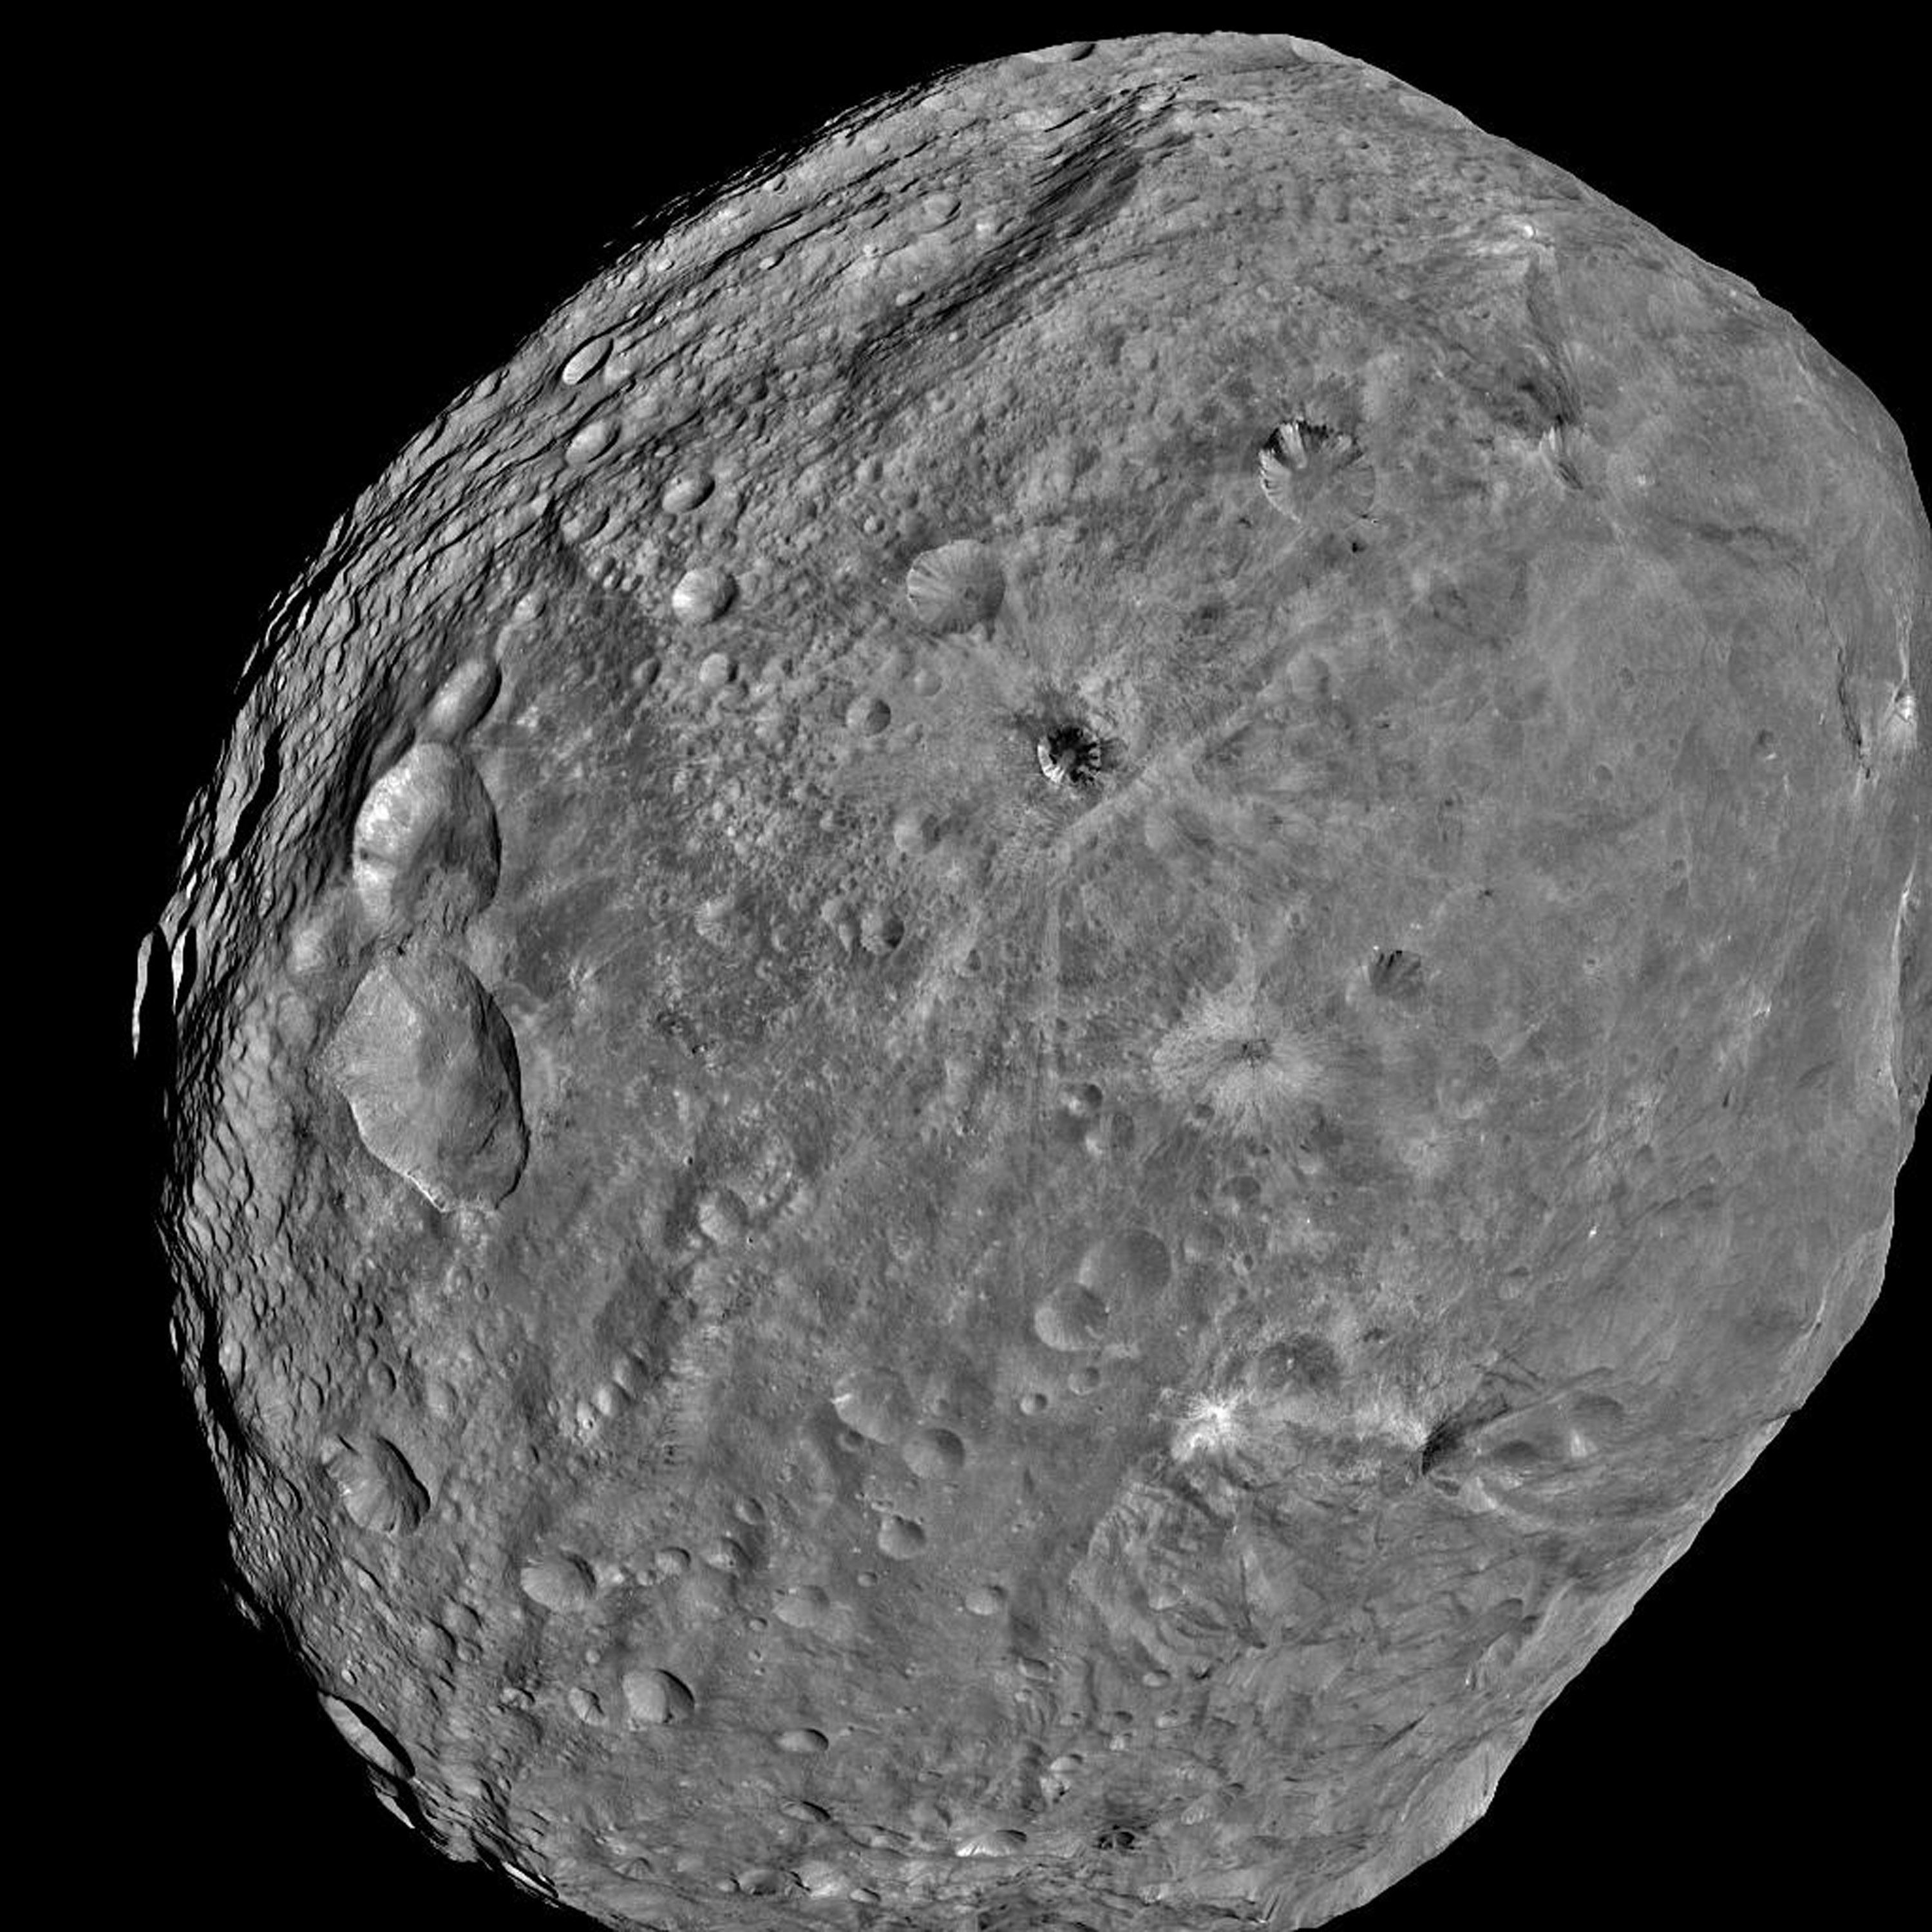 A Newly Discovered Asteroid Just Passed Very Close to Earth